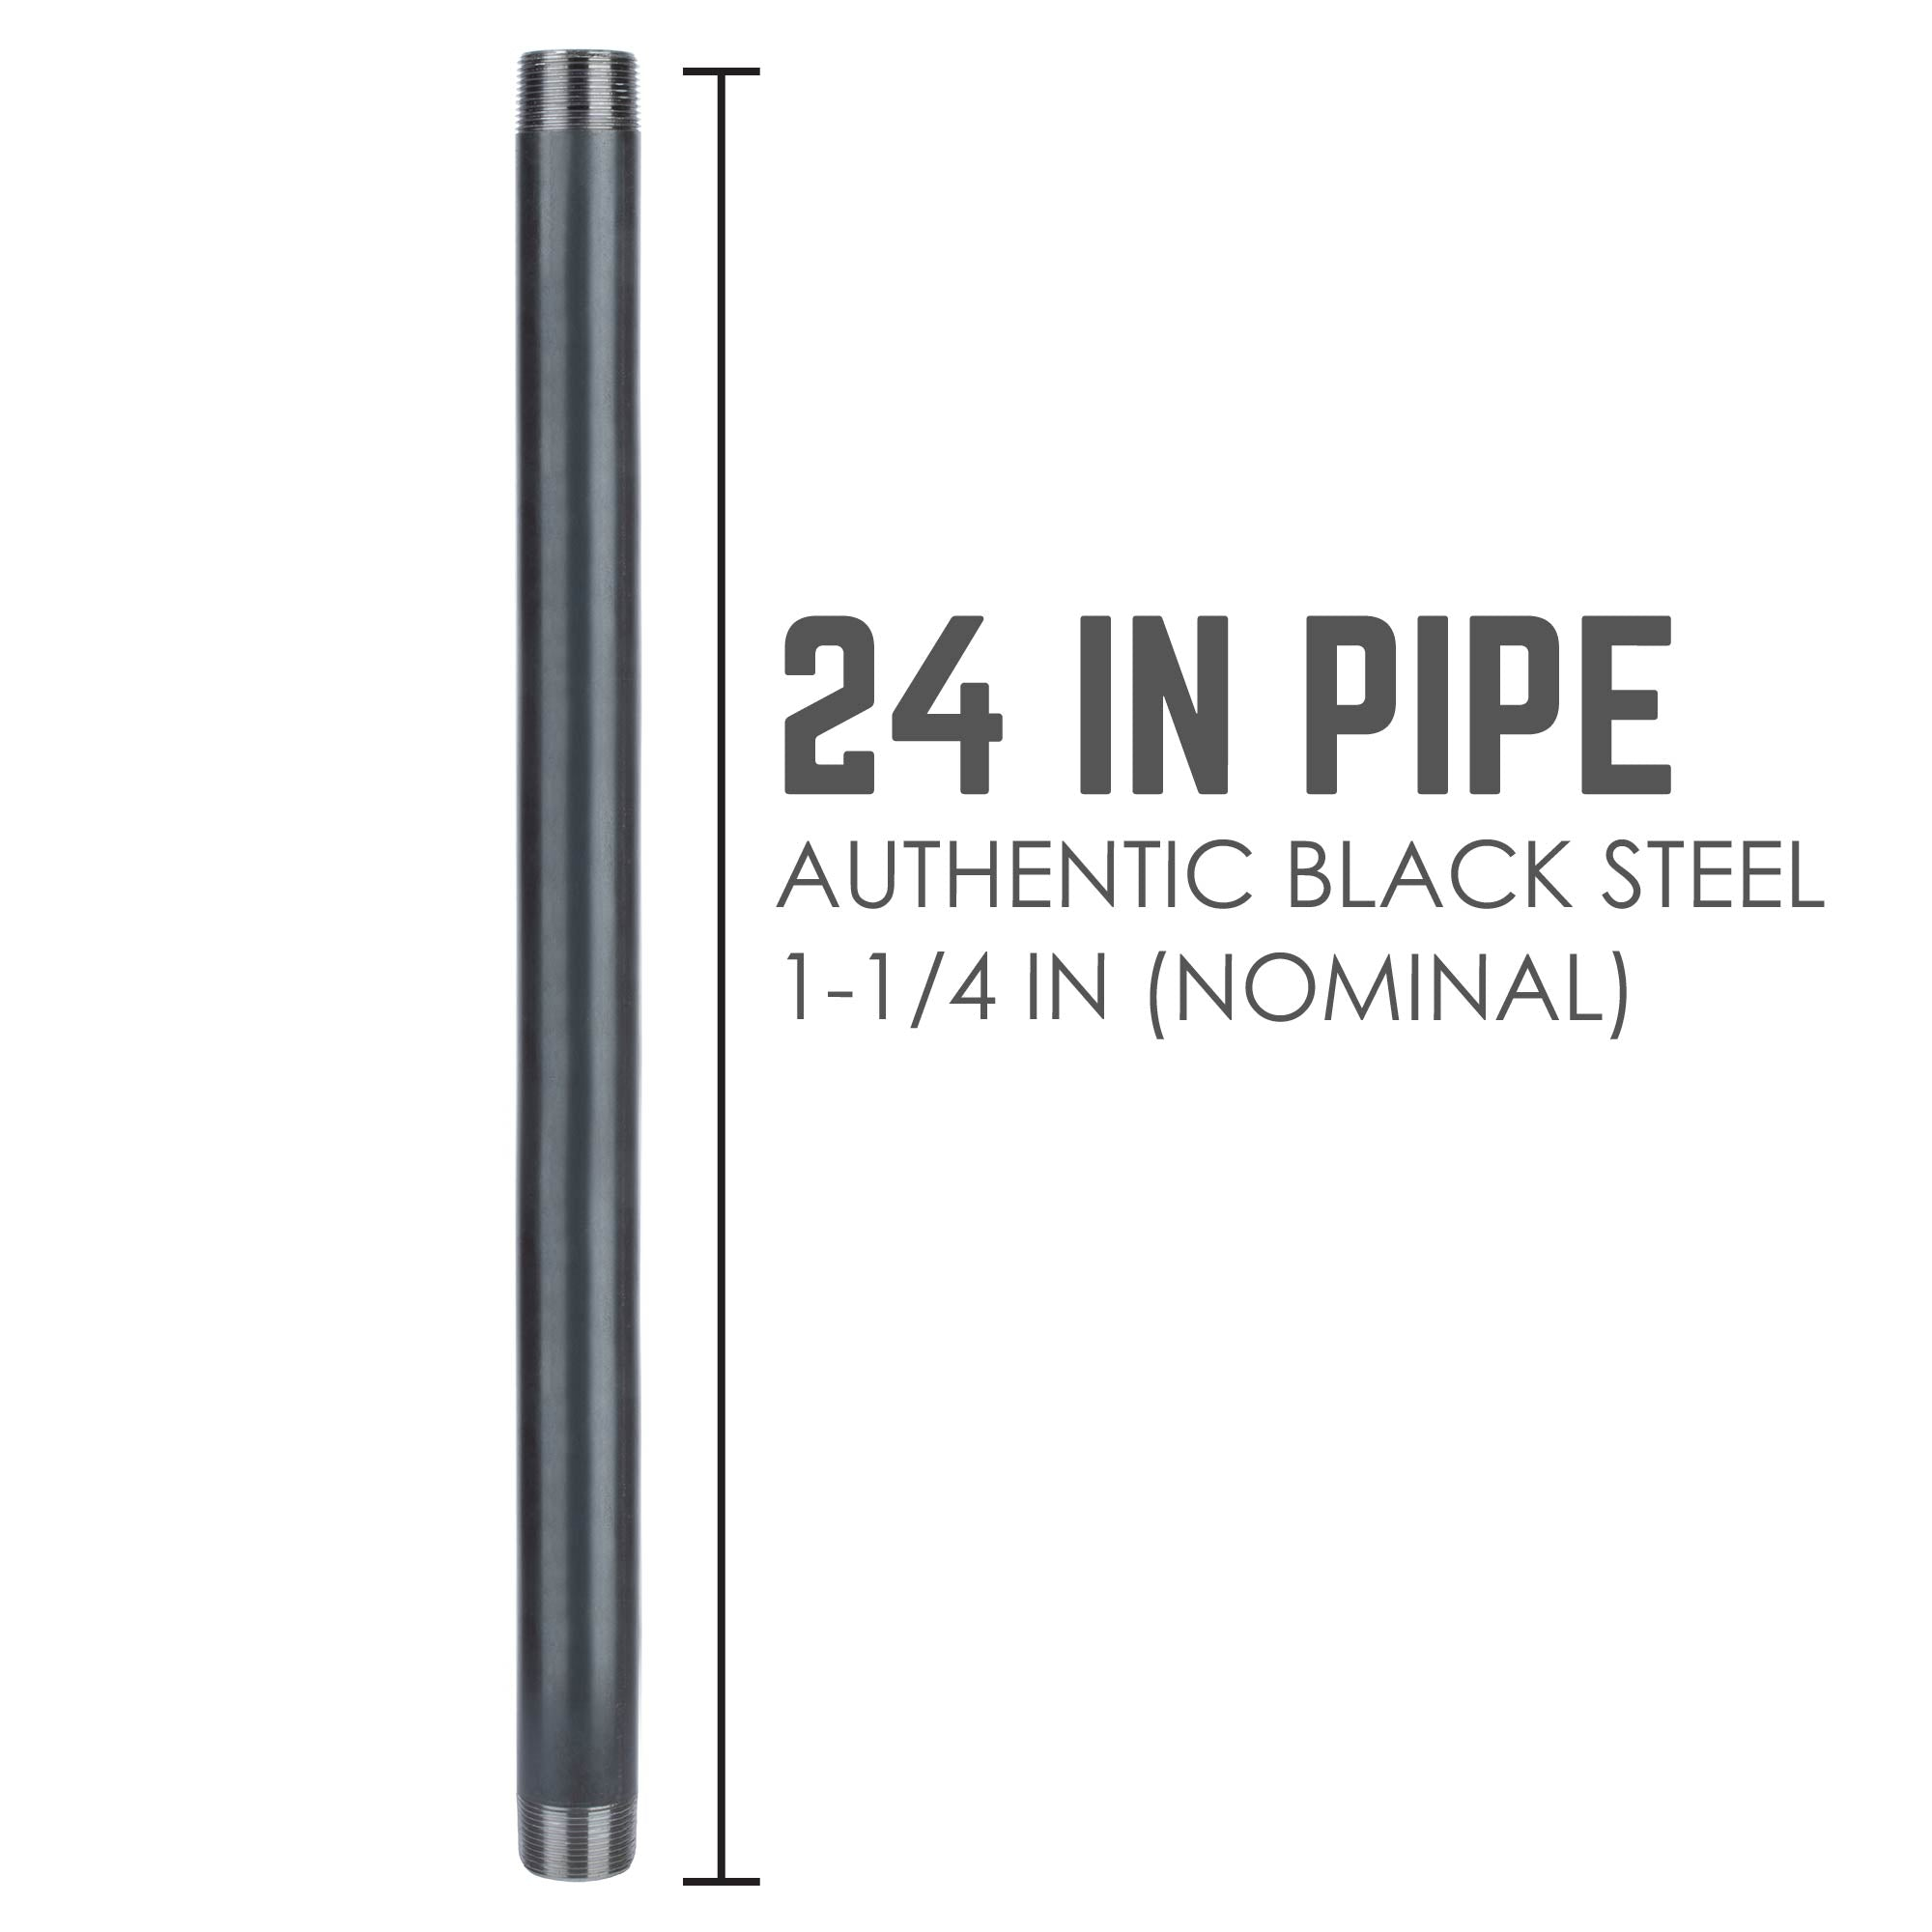 1 1/4 In X 24 In Black Pipe - Pipe Decor